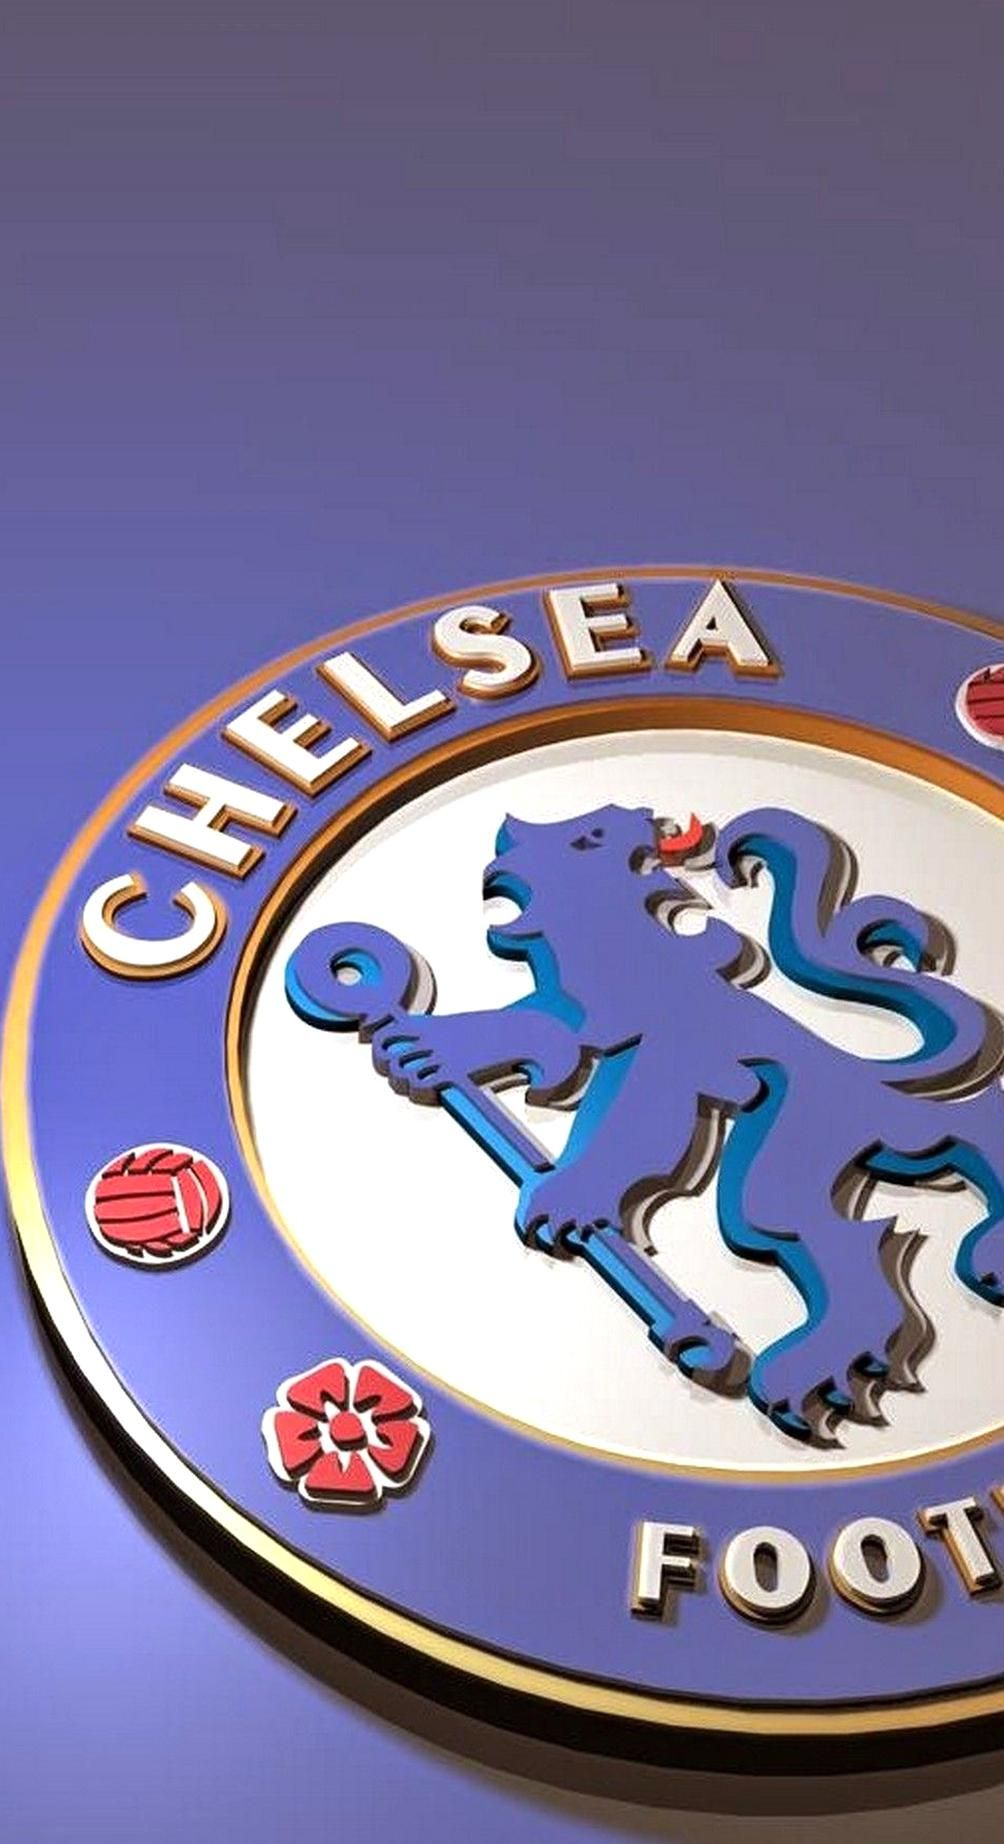 iPhone Wallpaper HD Chelsea Football Club Best Wallpaper